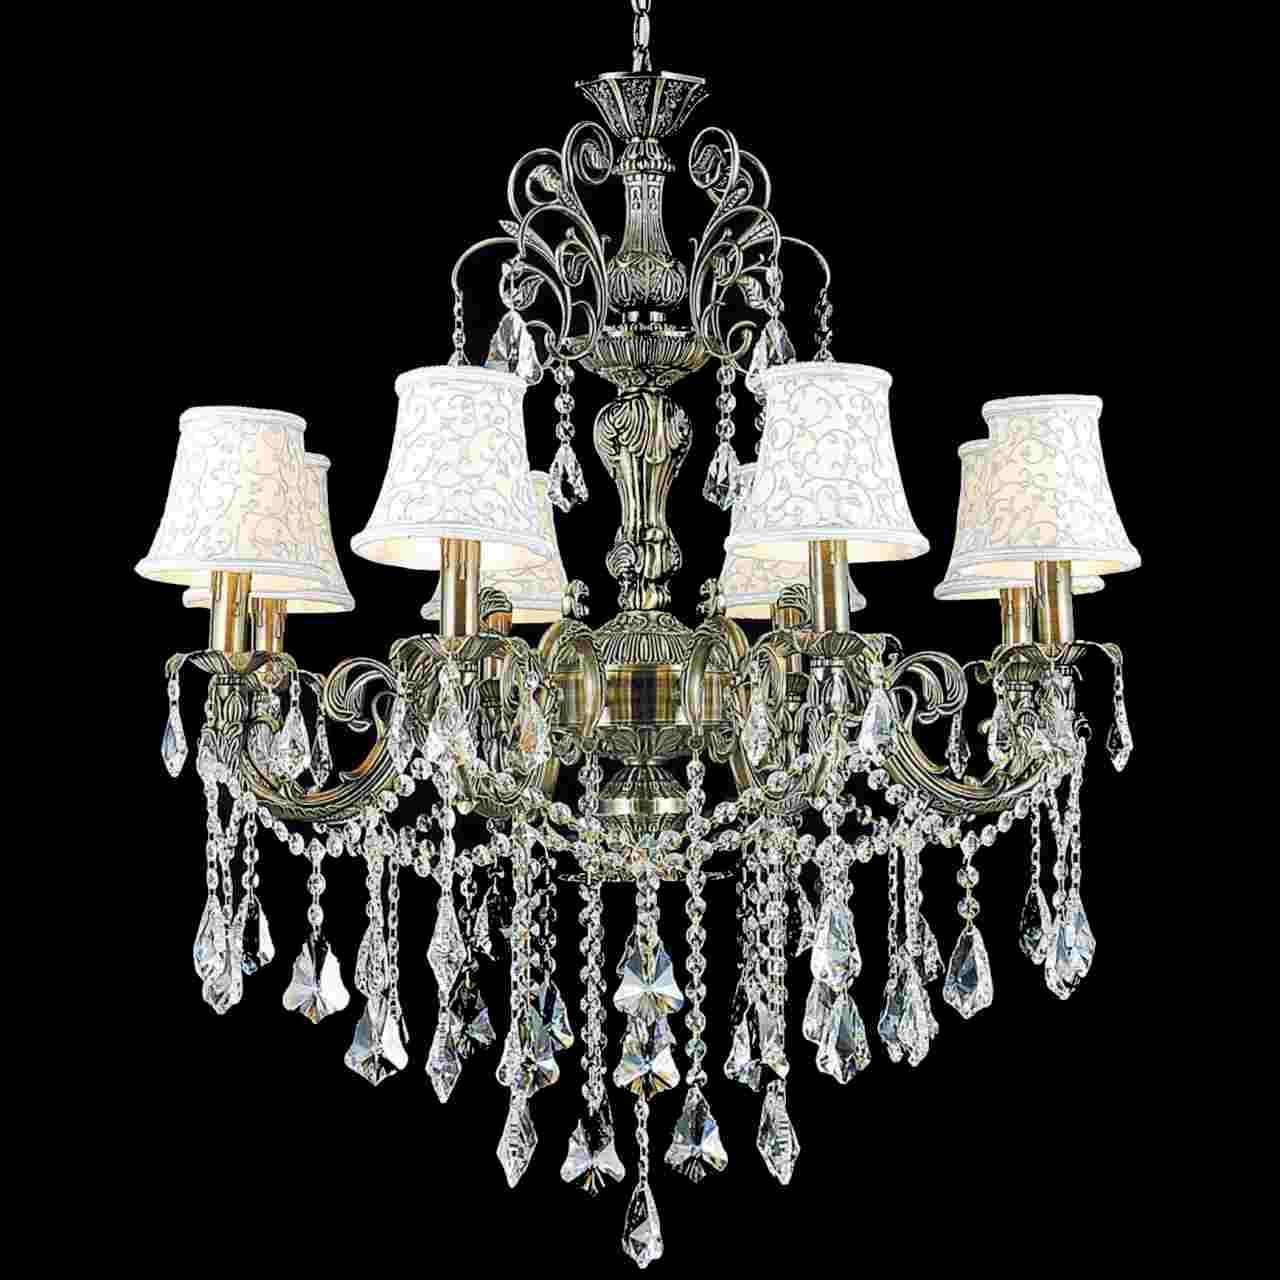 Best And Newest Traditional Chandeliers Intended For Brizzo Lighting Stores (View 2 of 15)